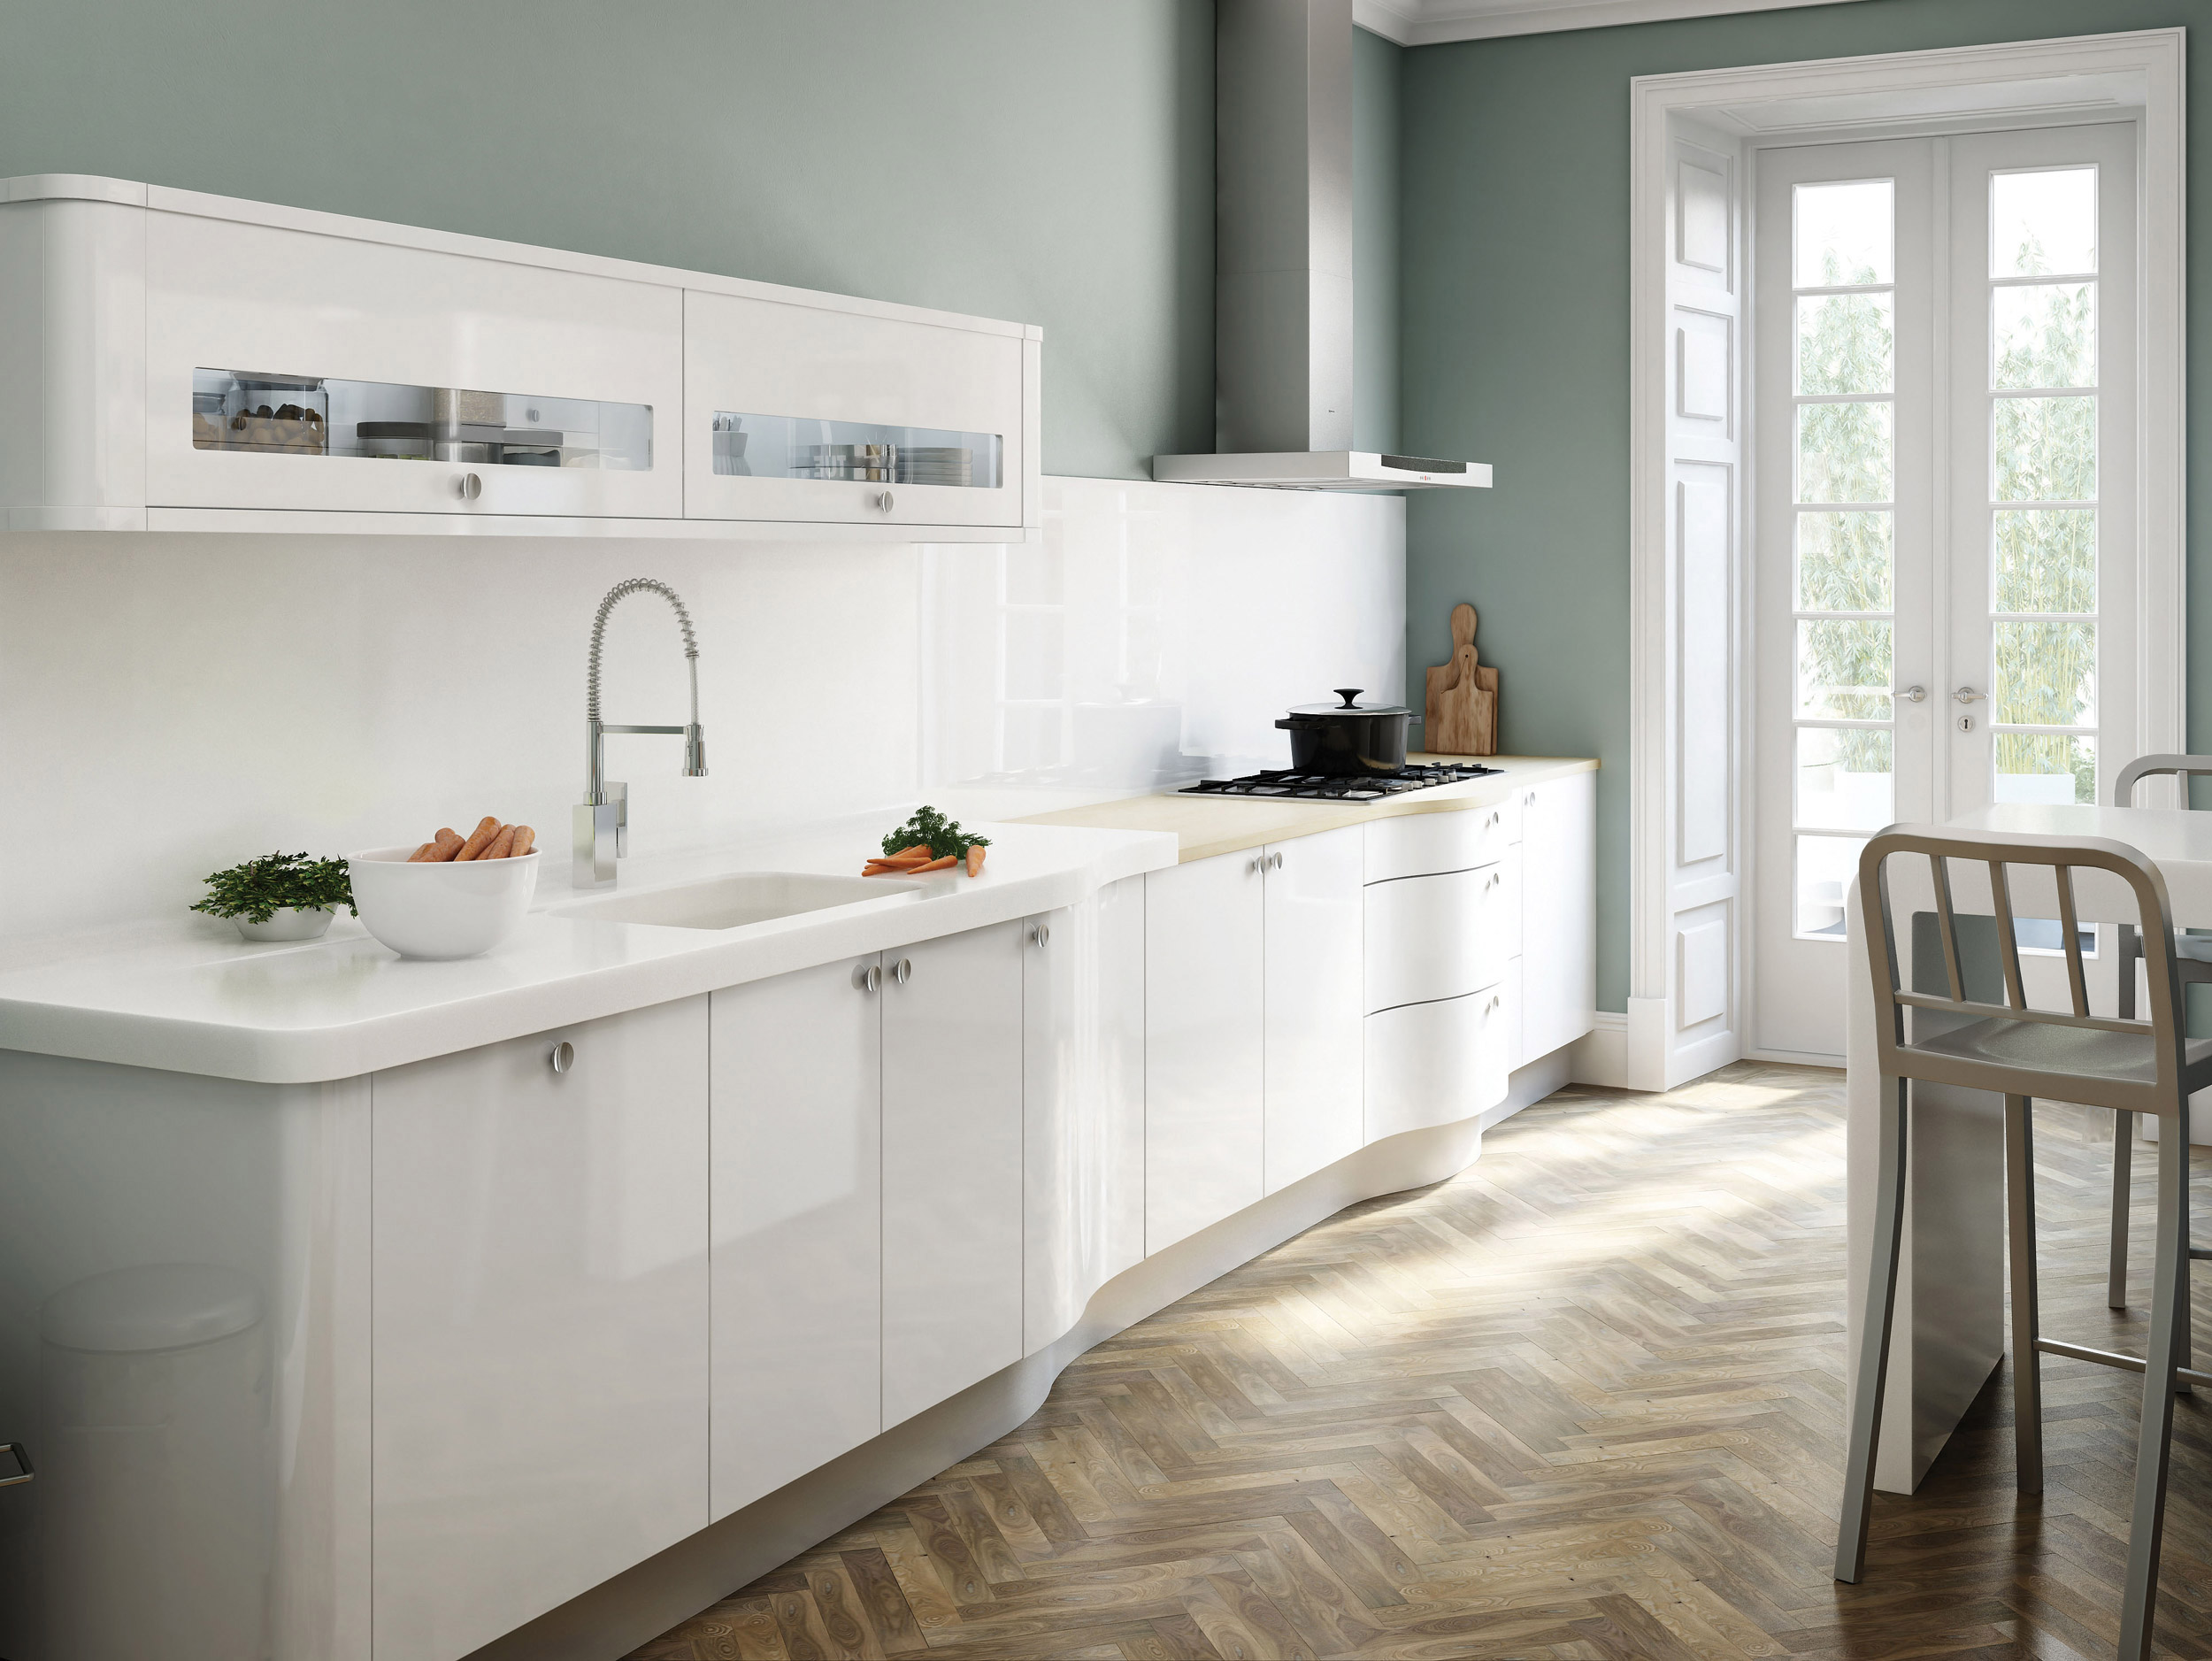 Remarkable Images of White Kitchens with White Cabinets 2500 x 1877 · 613 kB · jpeg